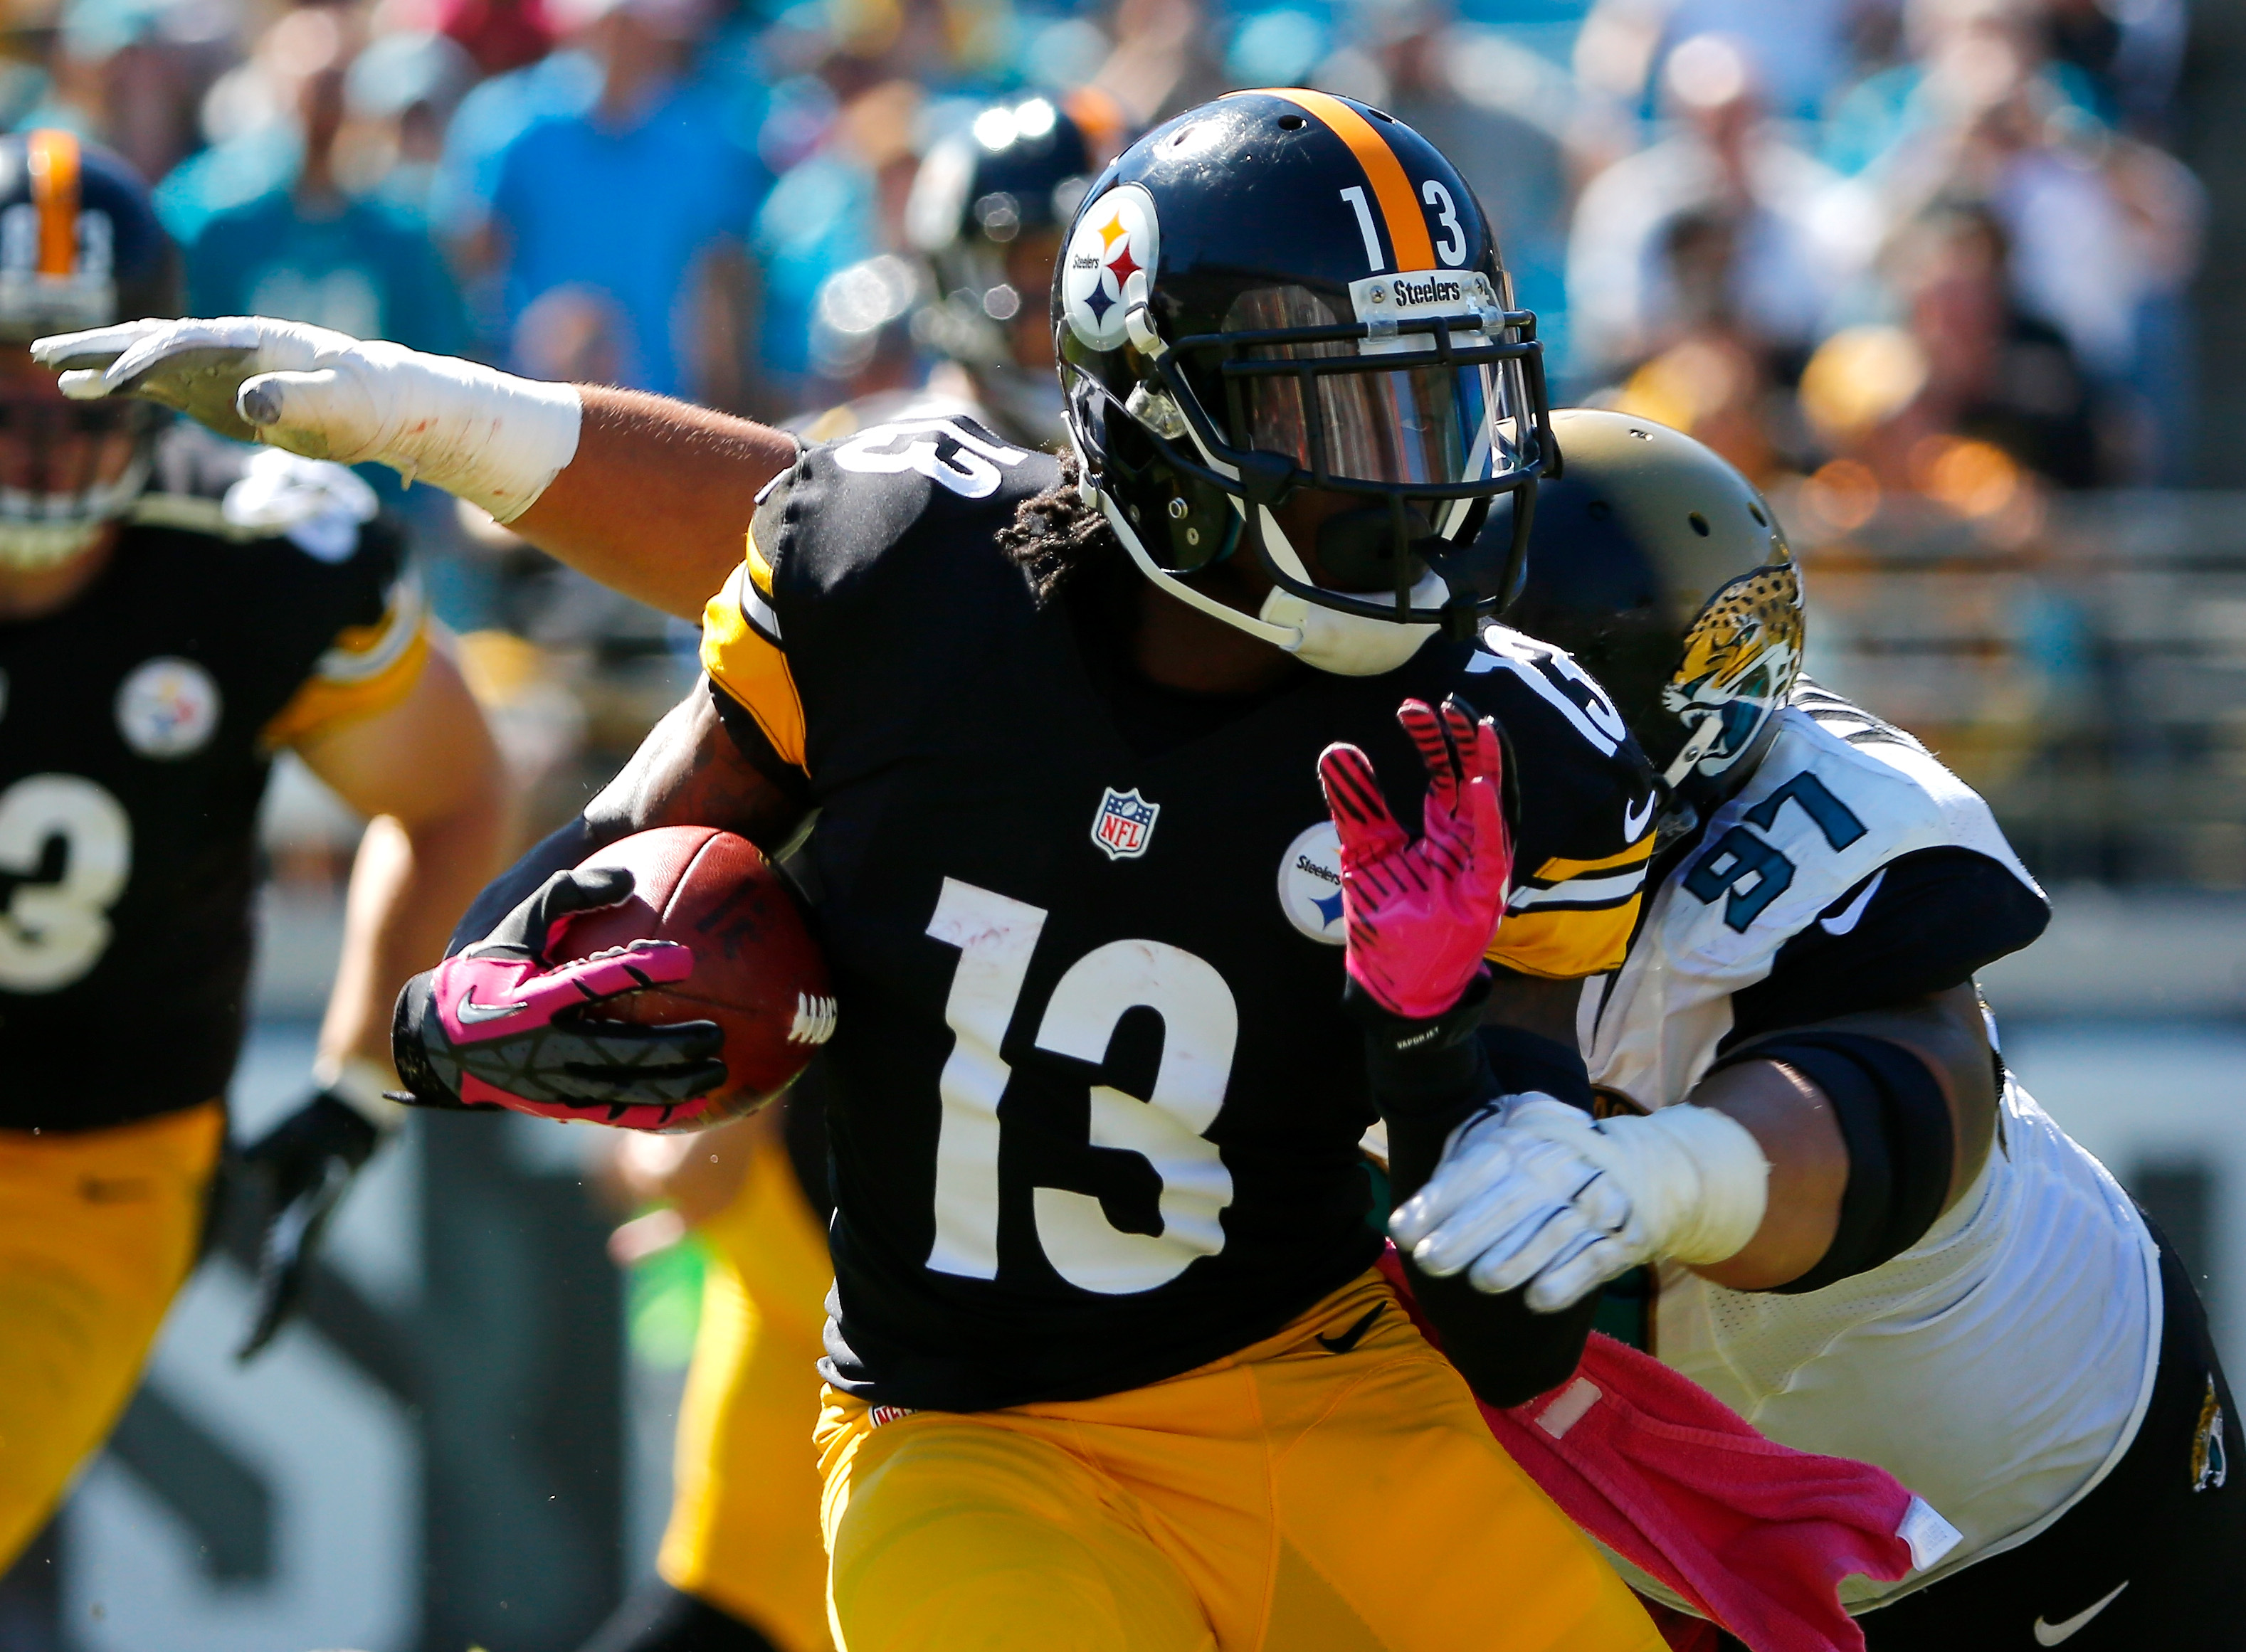 Dri Archer, playing for the Pittsburgh Steelers in 2014, makes a move against Jacksonville (Getty Images)